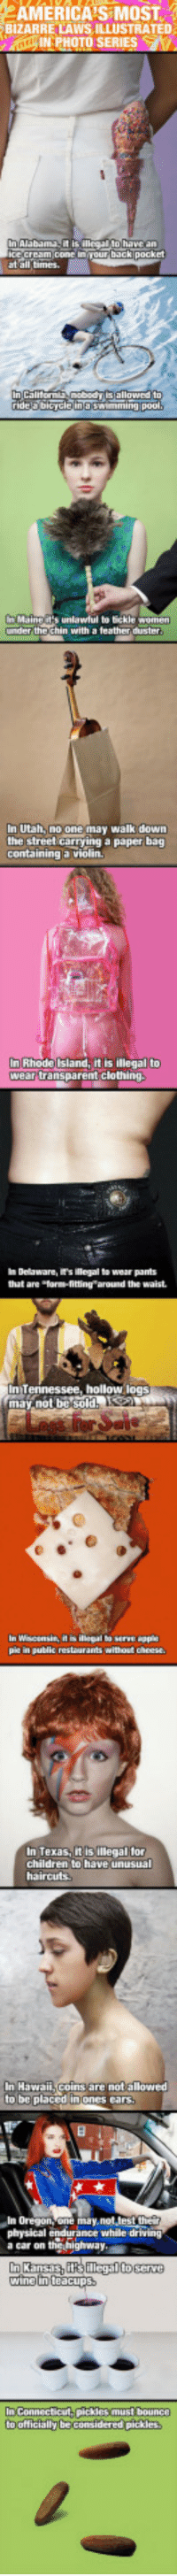 """<p>Most Bizarre Laws In America</p>: eAMERICA'S MOST  BIZARRE LAWS ILLUSTRATED  at all times  pool  under thechin with a feather duster  nUtah, no one may walk down  the street carrying a paper bag  containing a violin  In Rhode Island, it is illegal to  wear transparent clothing  In Delaware, is illegal to wear pants  that are """"Tarm-fittingaround the waist.  n Wascensin, itillopal to sETVE p  pie in public restaurants without cheese  In Texas, it is legal tor  children to have unusual  In Hawaii,coins are not allowed  to be placed iniones cars  In Oregon  itfs  In Connecticut-pickles must bounce  to officially be considered pickles <p>Most Bizarre Laws In America</p>"""